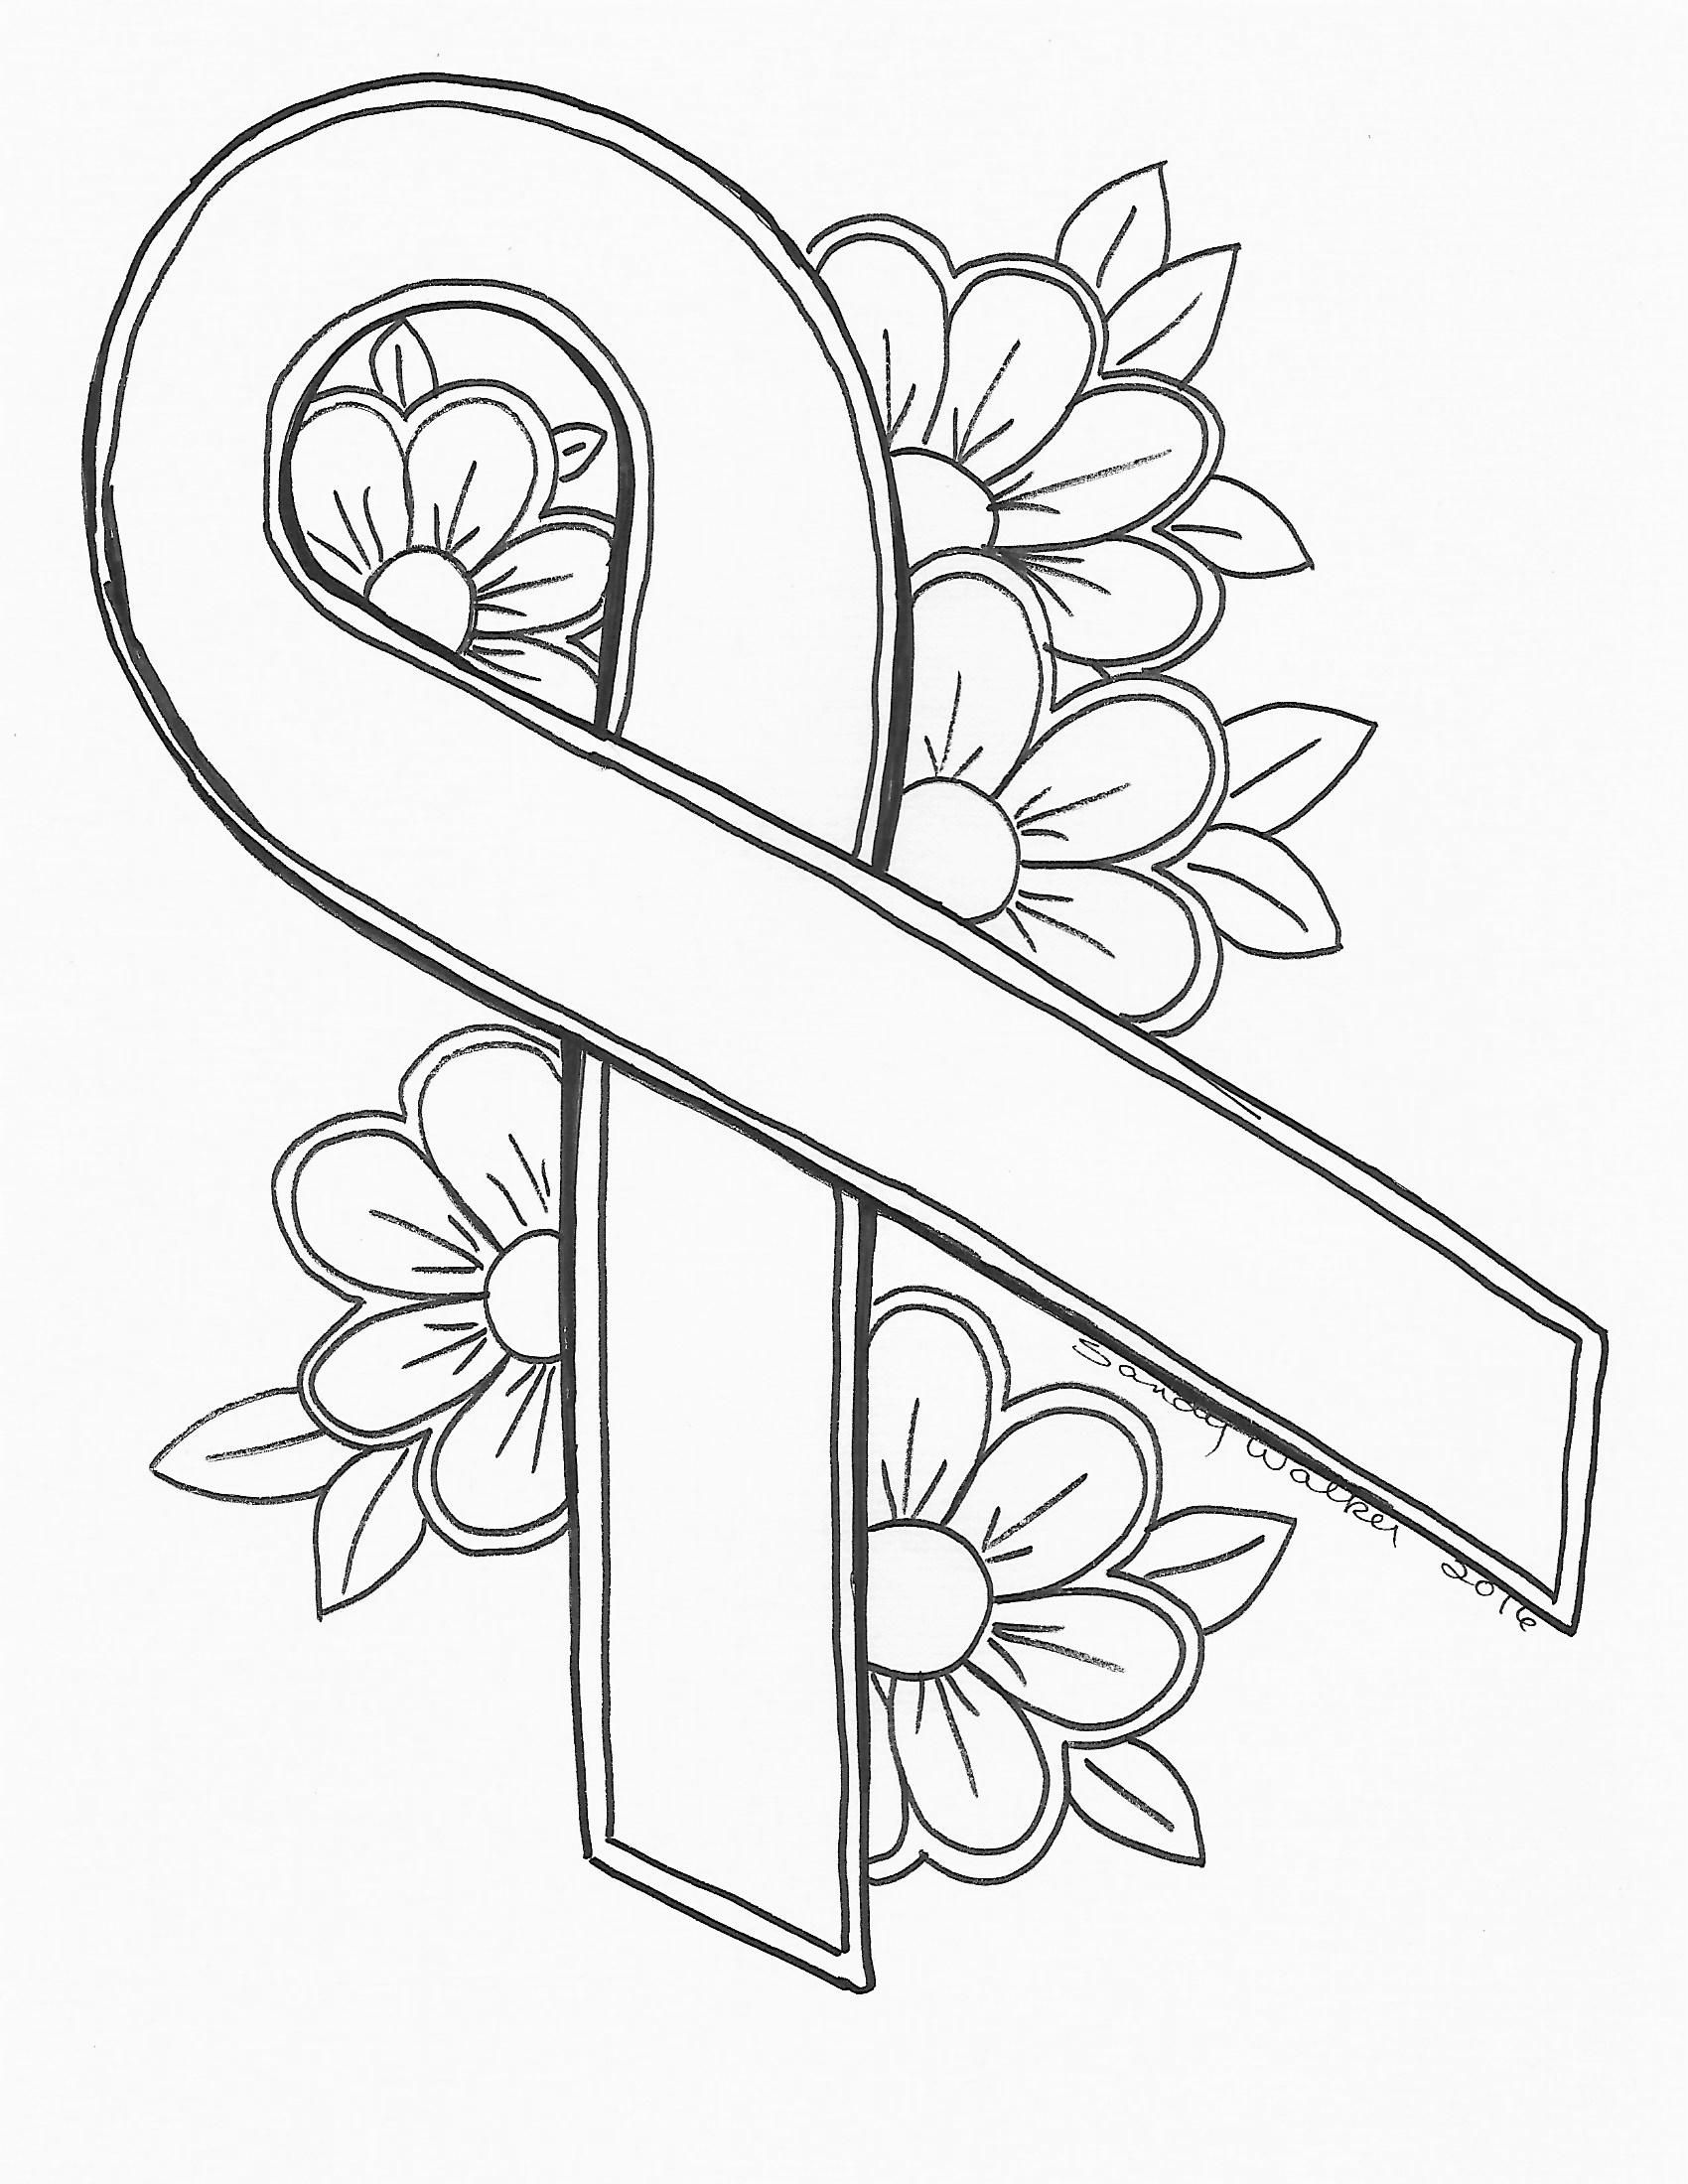 Lung Cancer Coloring Pages